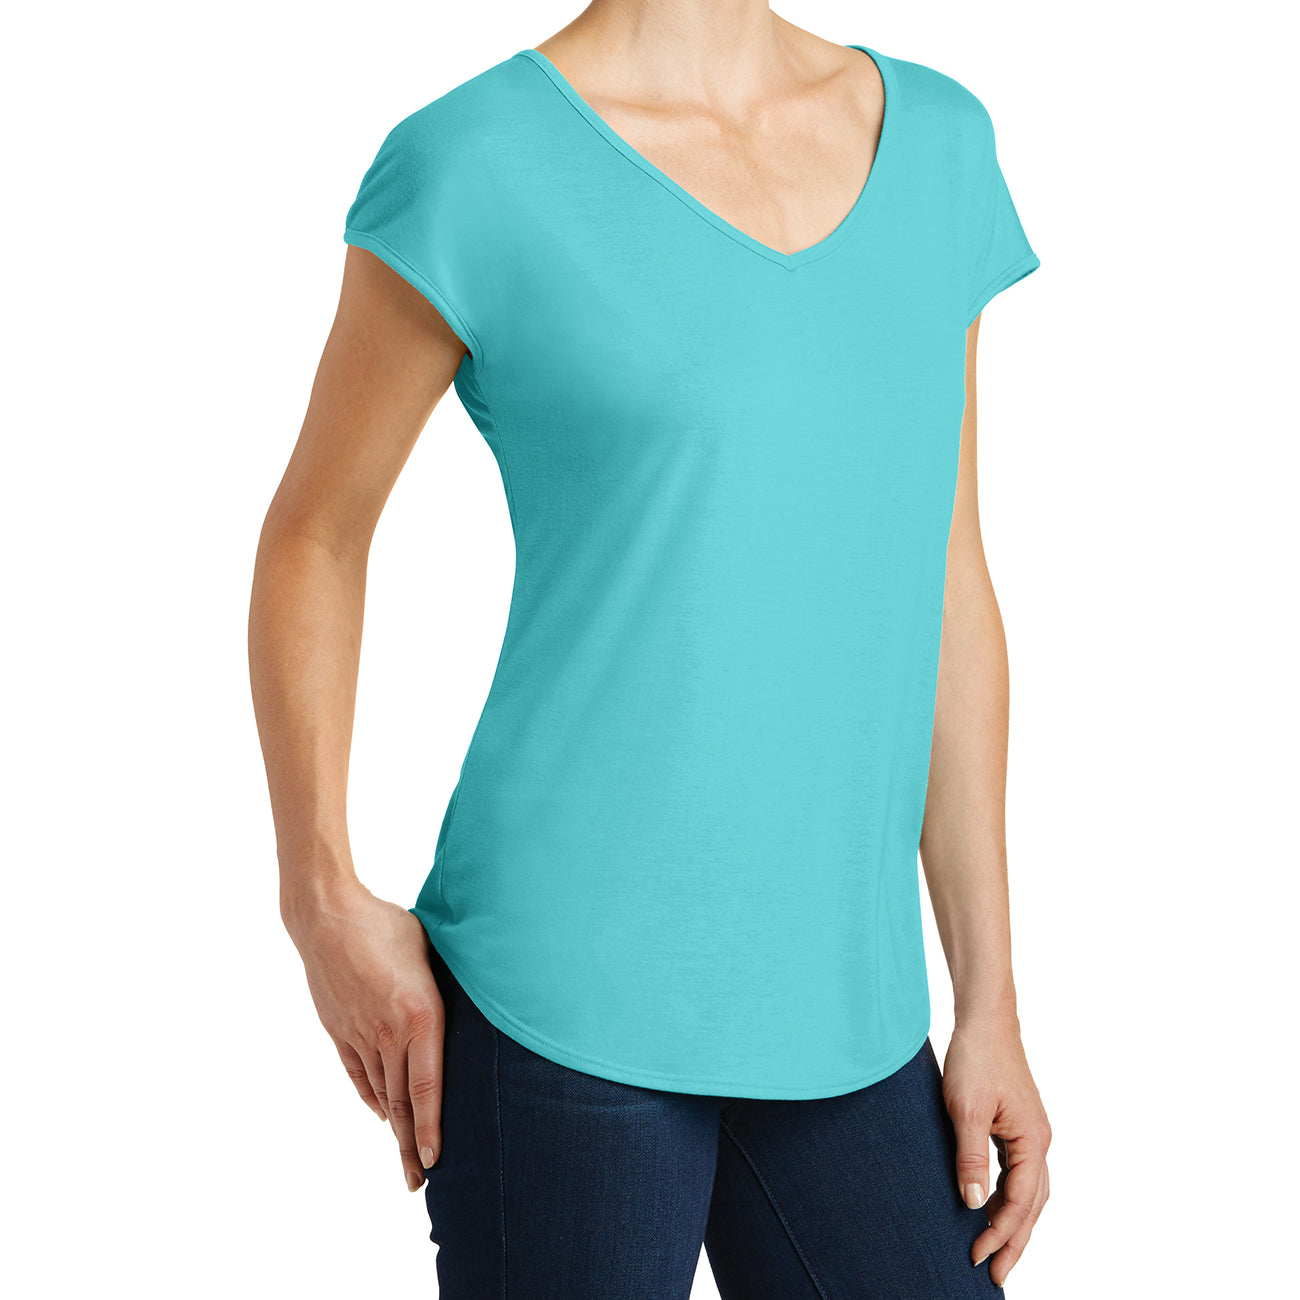 Womens Drapey Cross-Back Tee - Aqua Ice - Side